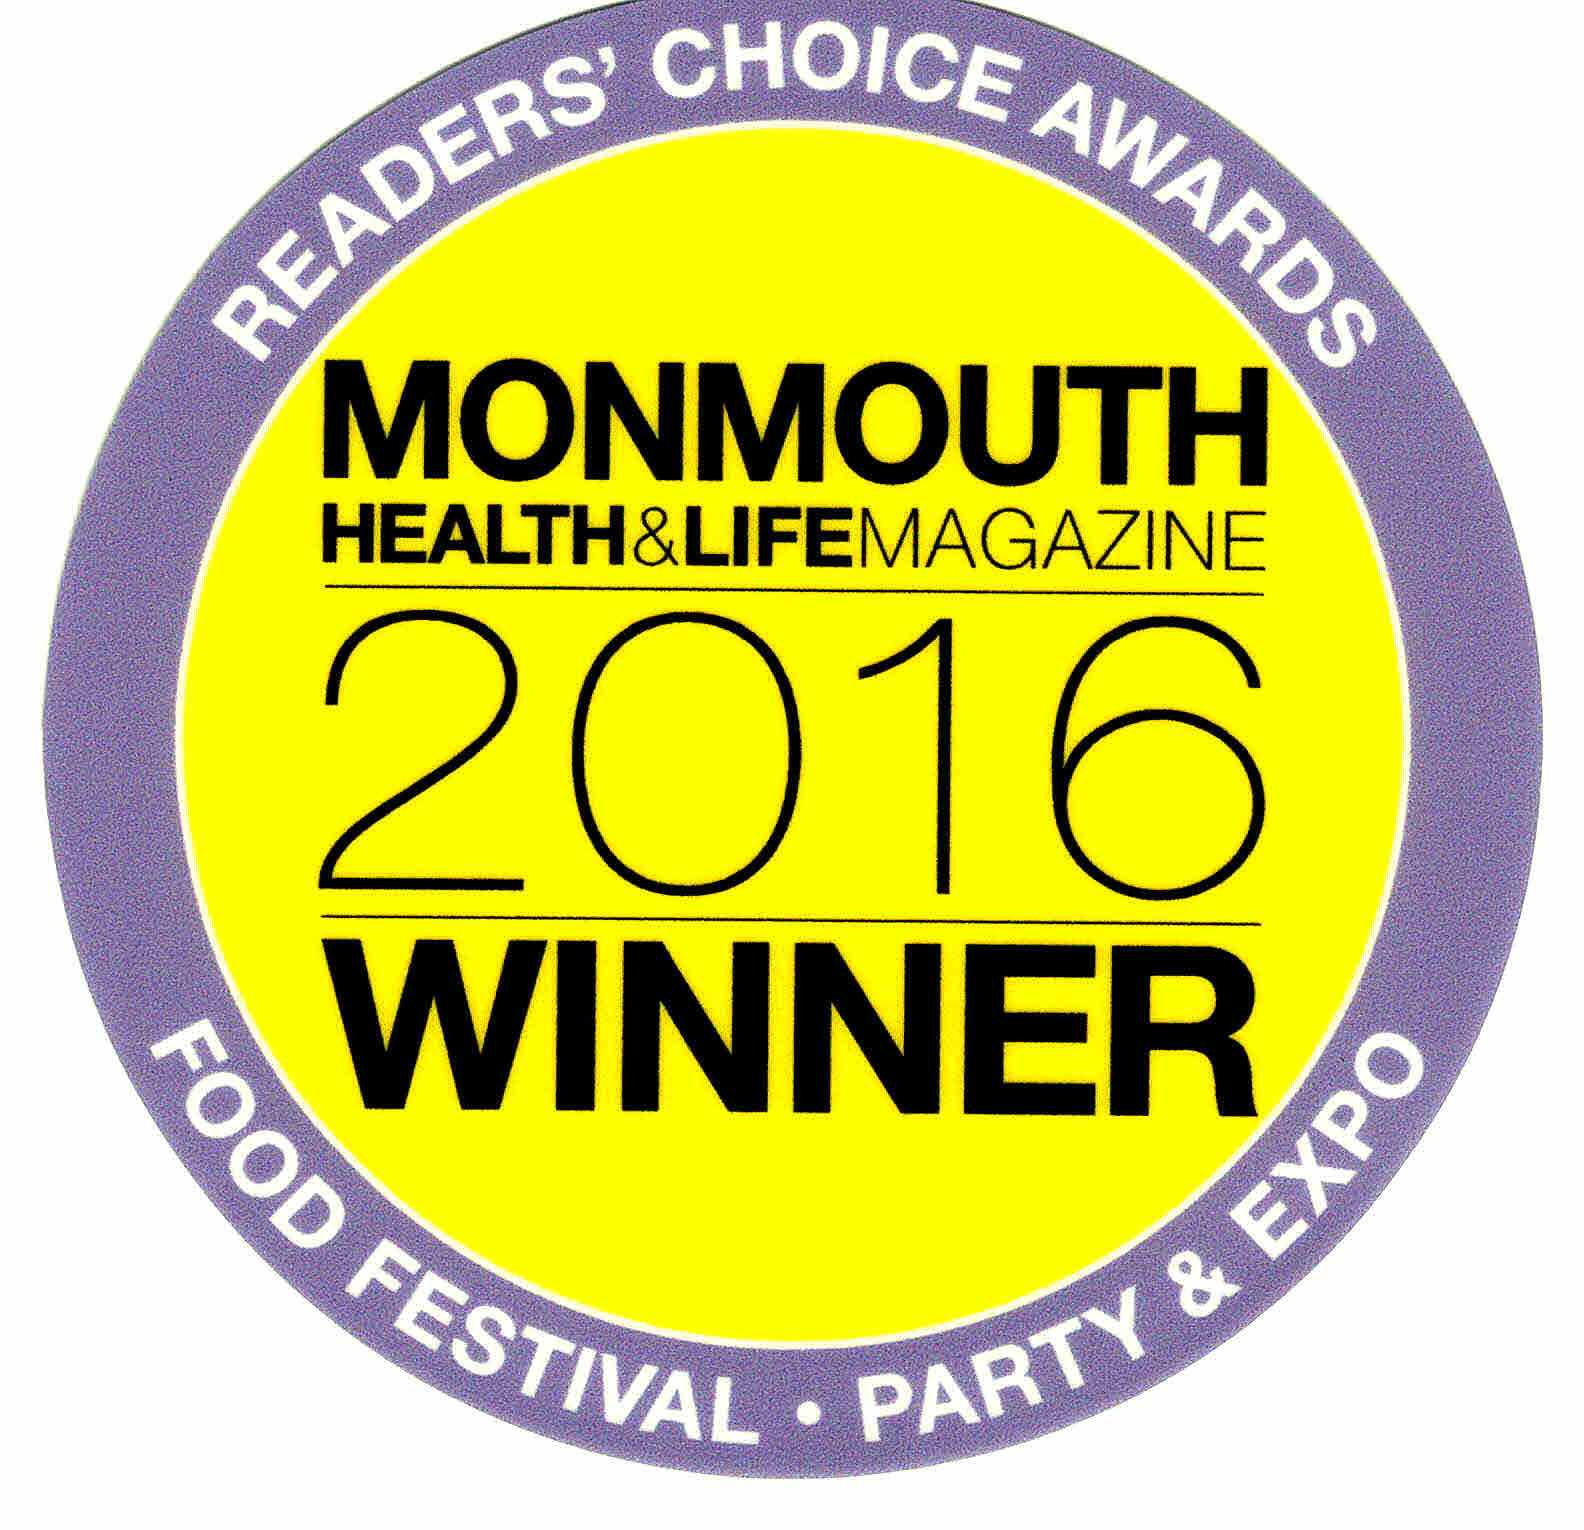 Best-of-2016-Monmouth-Health-and-Life-magazine.jpg